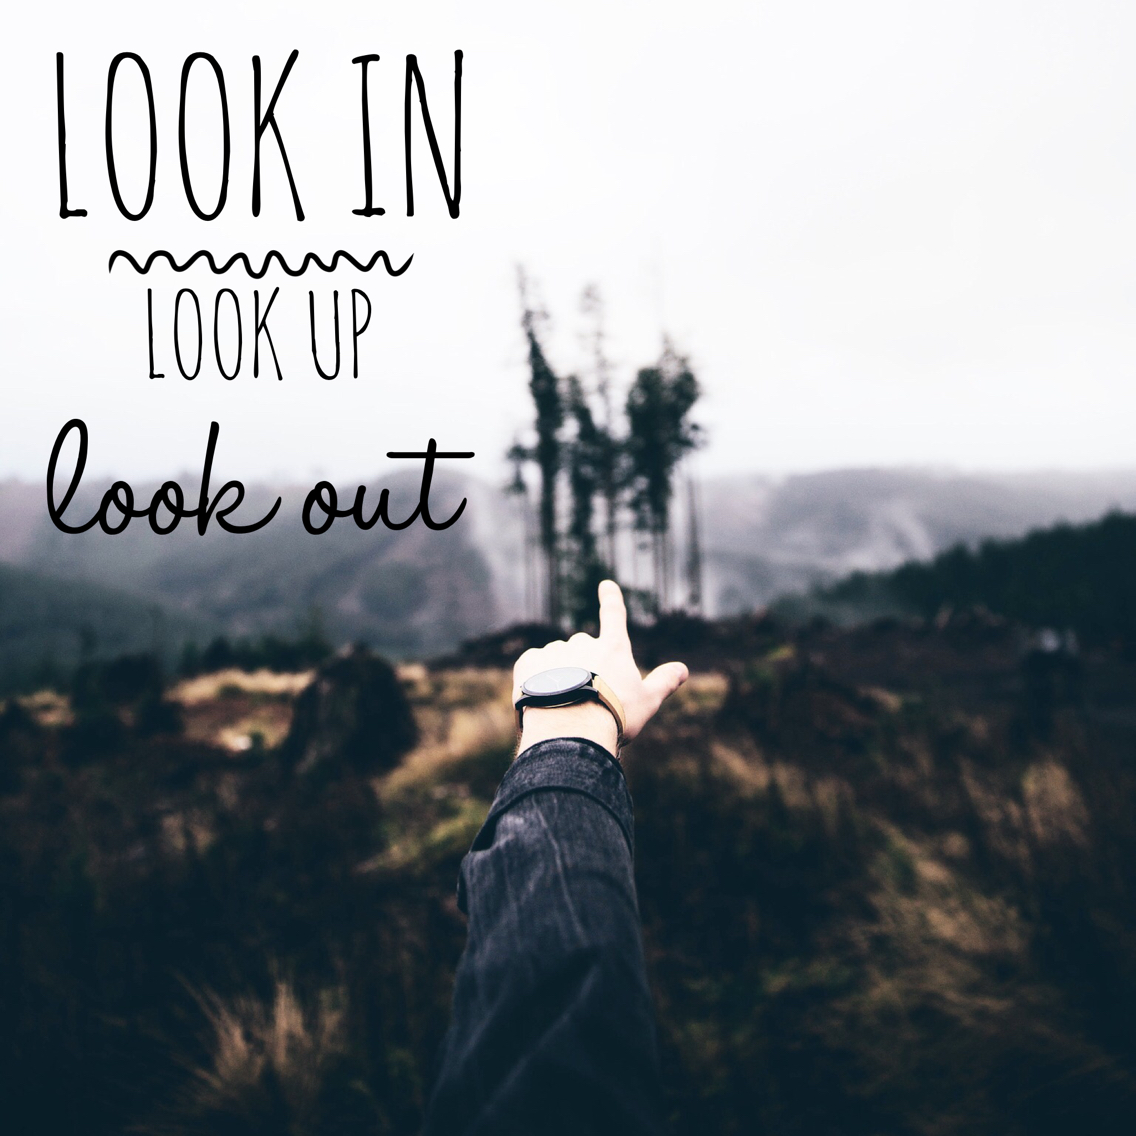 Look in Look Up Look Out